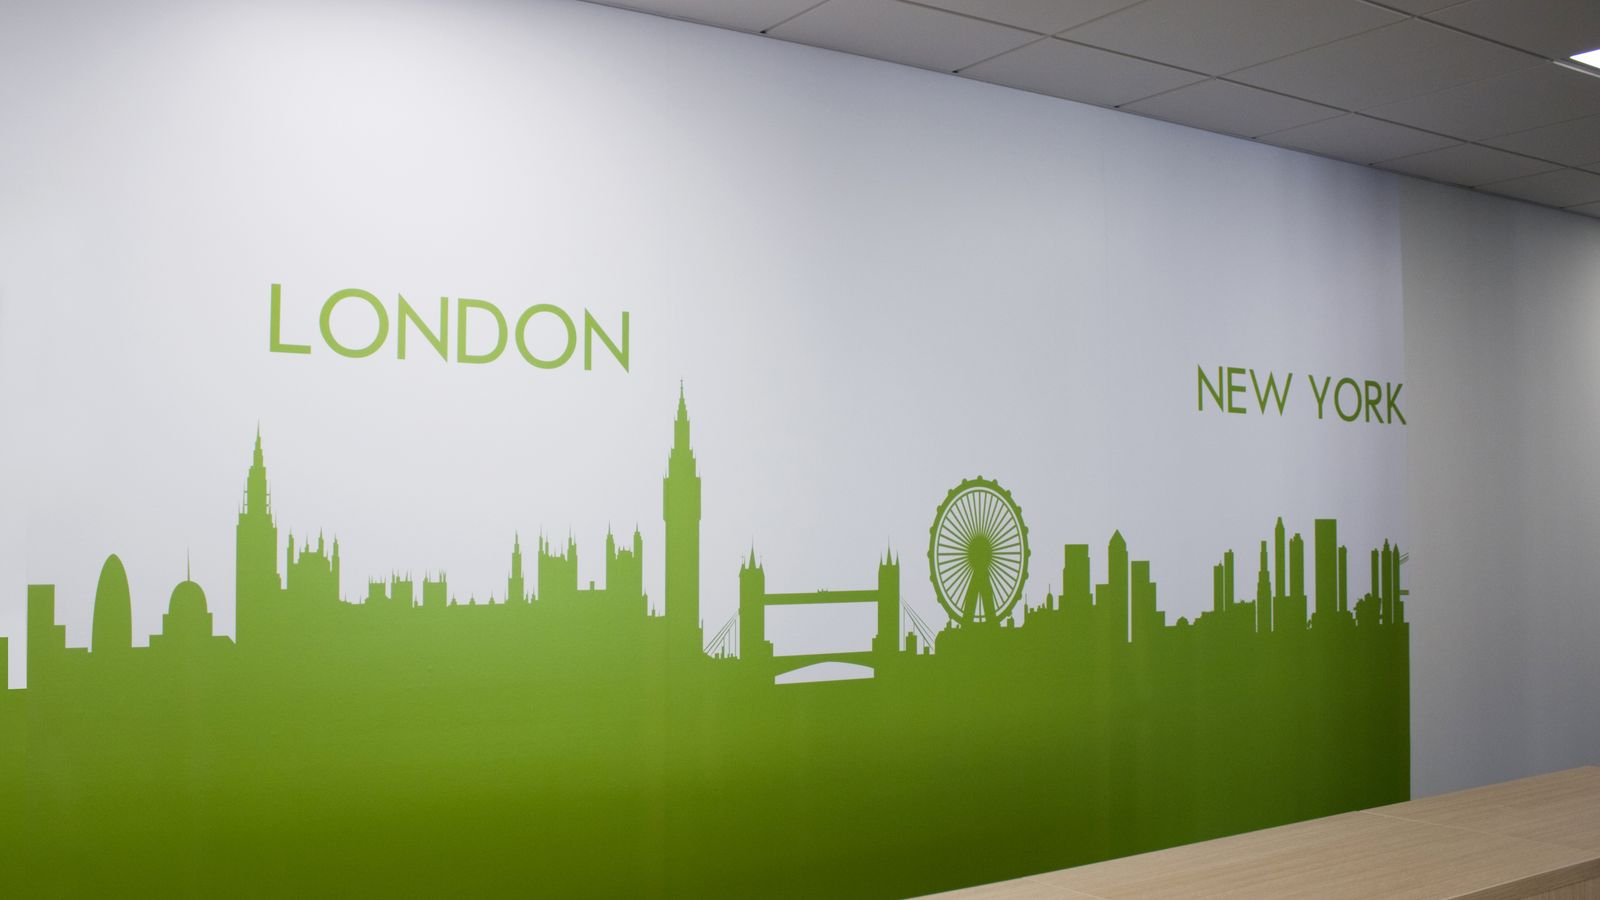 decorative interior wall sign in a large size displaying skyline graphics made of opaque vinyl